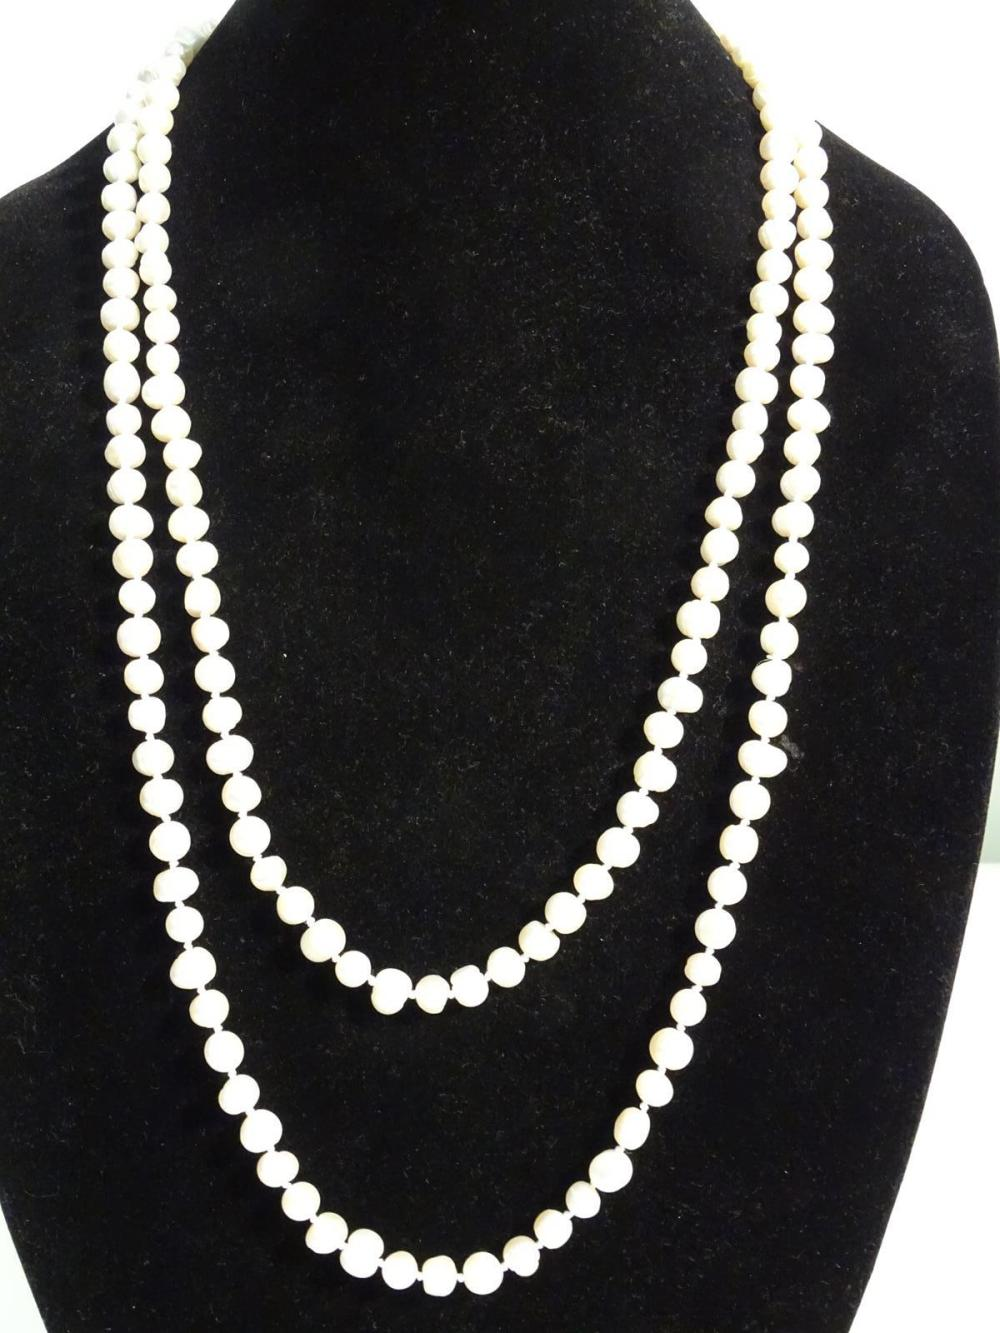 FRESHWATER RINGED PEARL NECKLACE